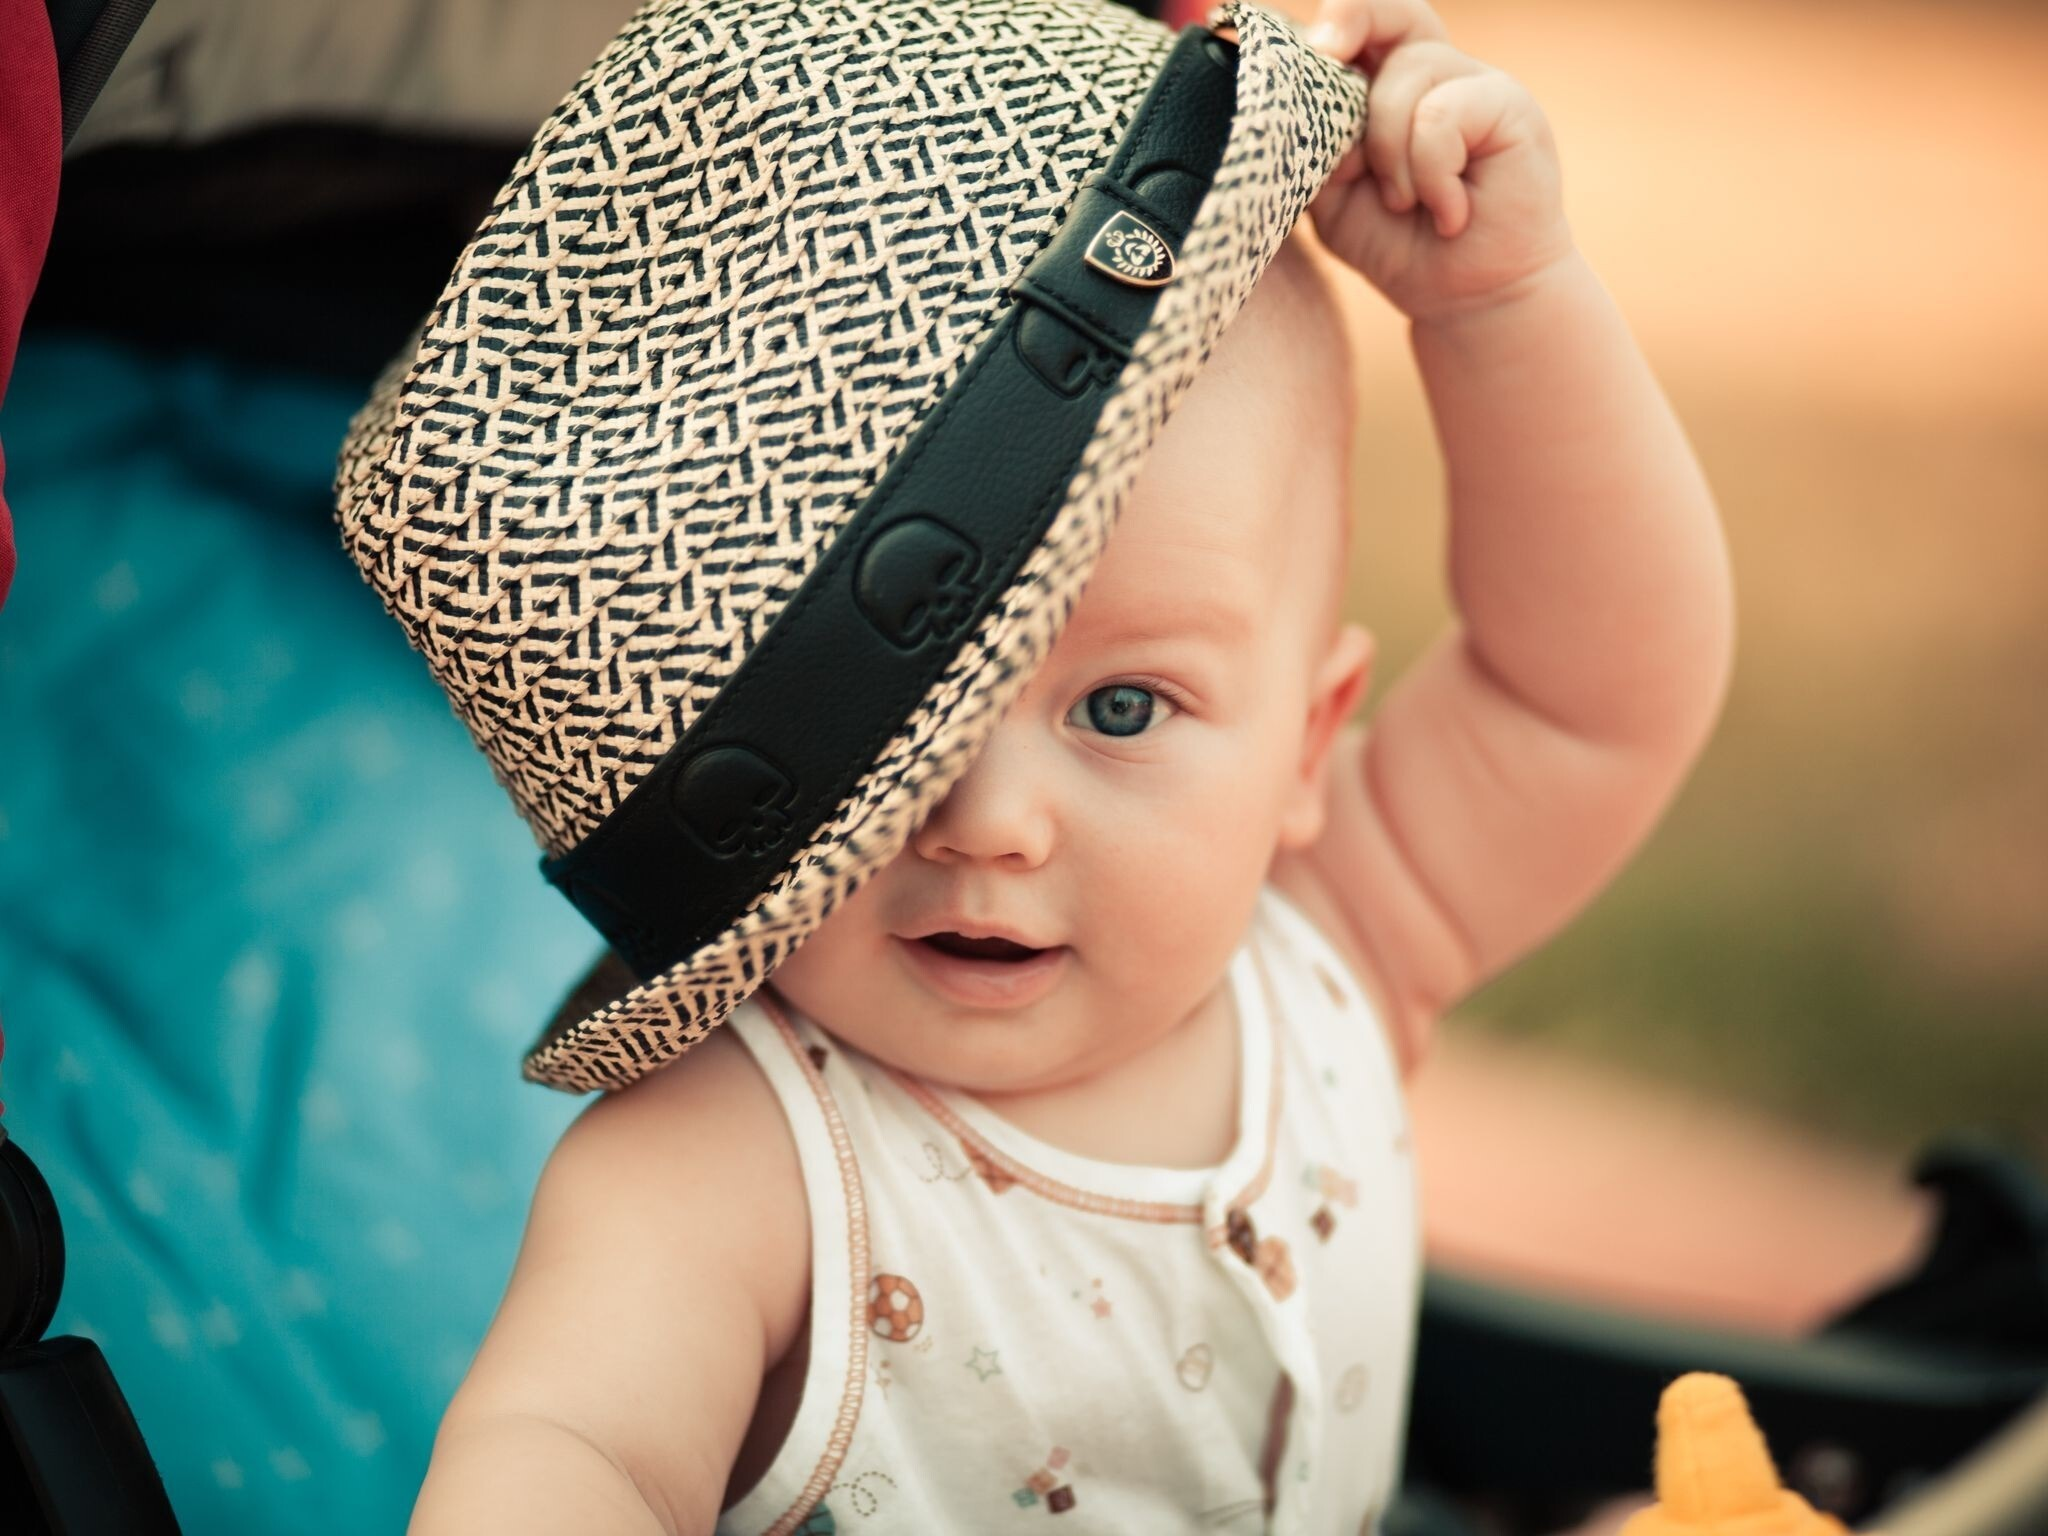 cute baby playing with cap high qaulity laptop background wallpaper